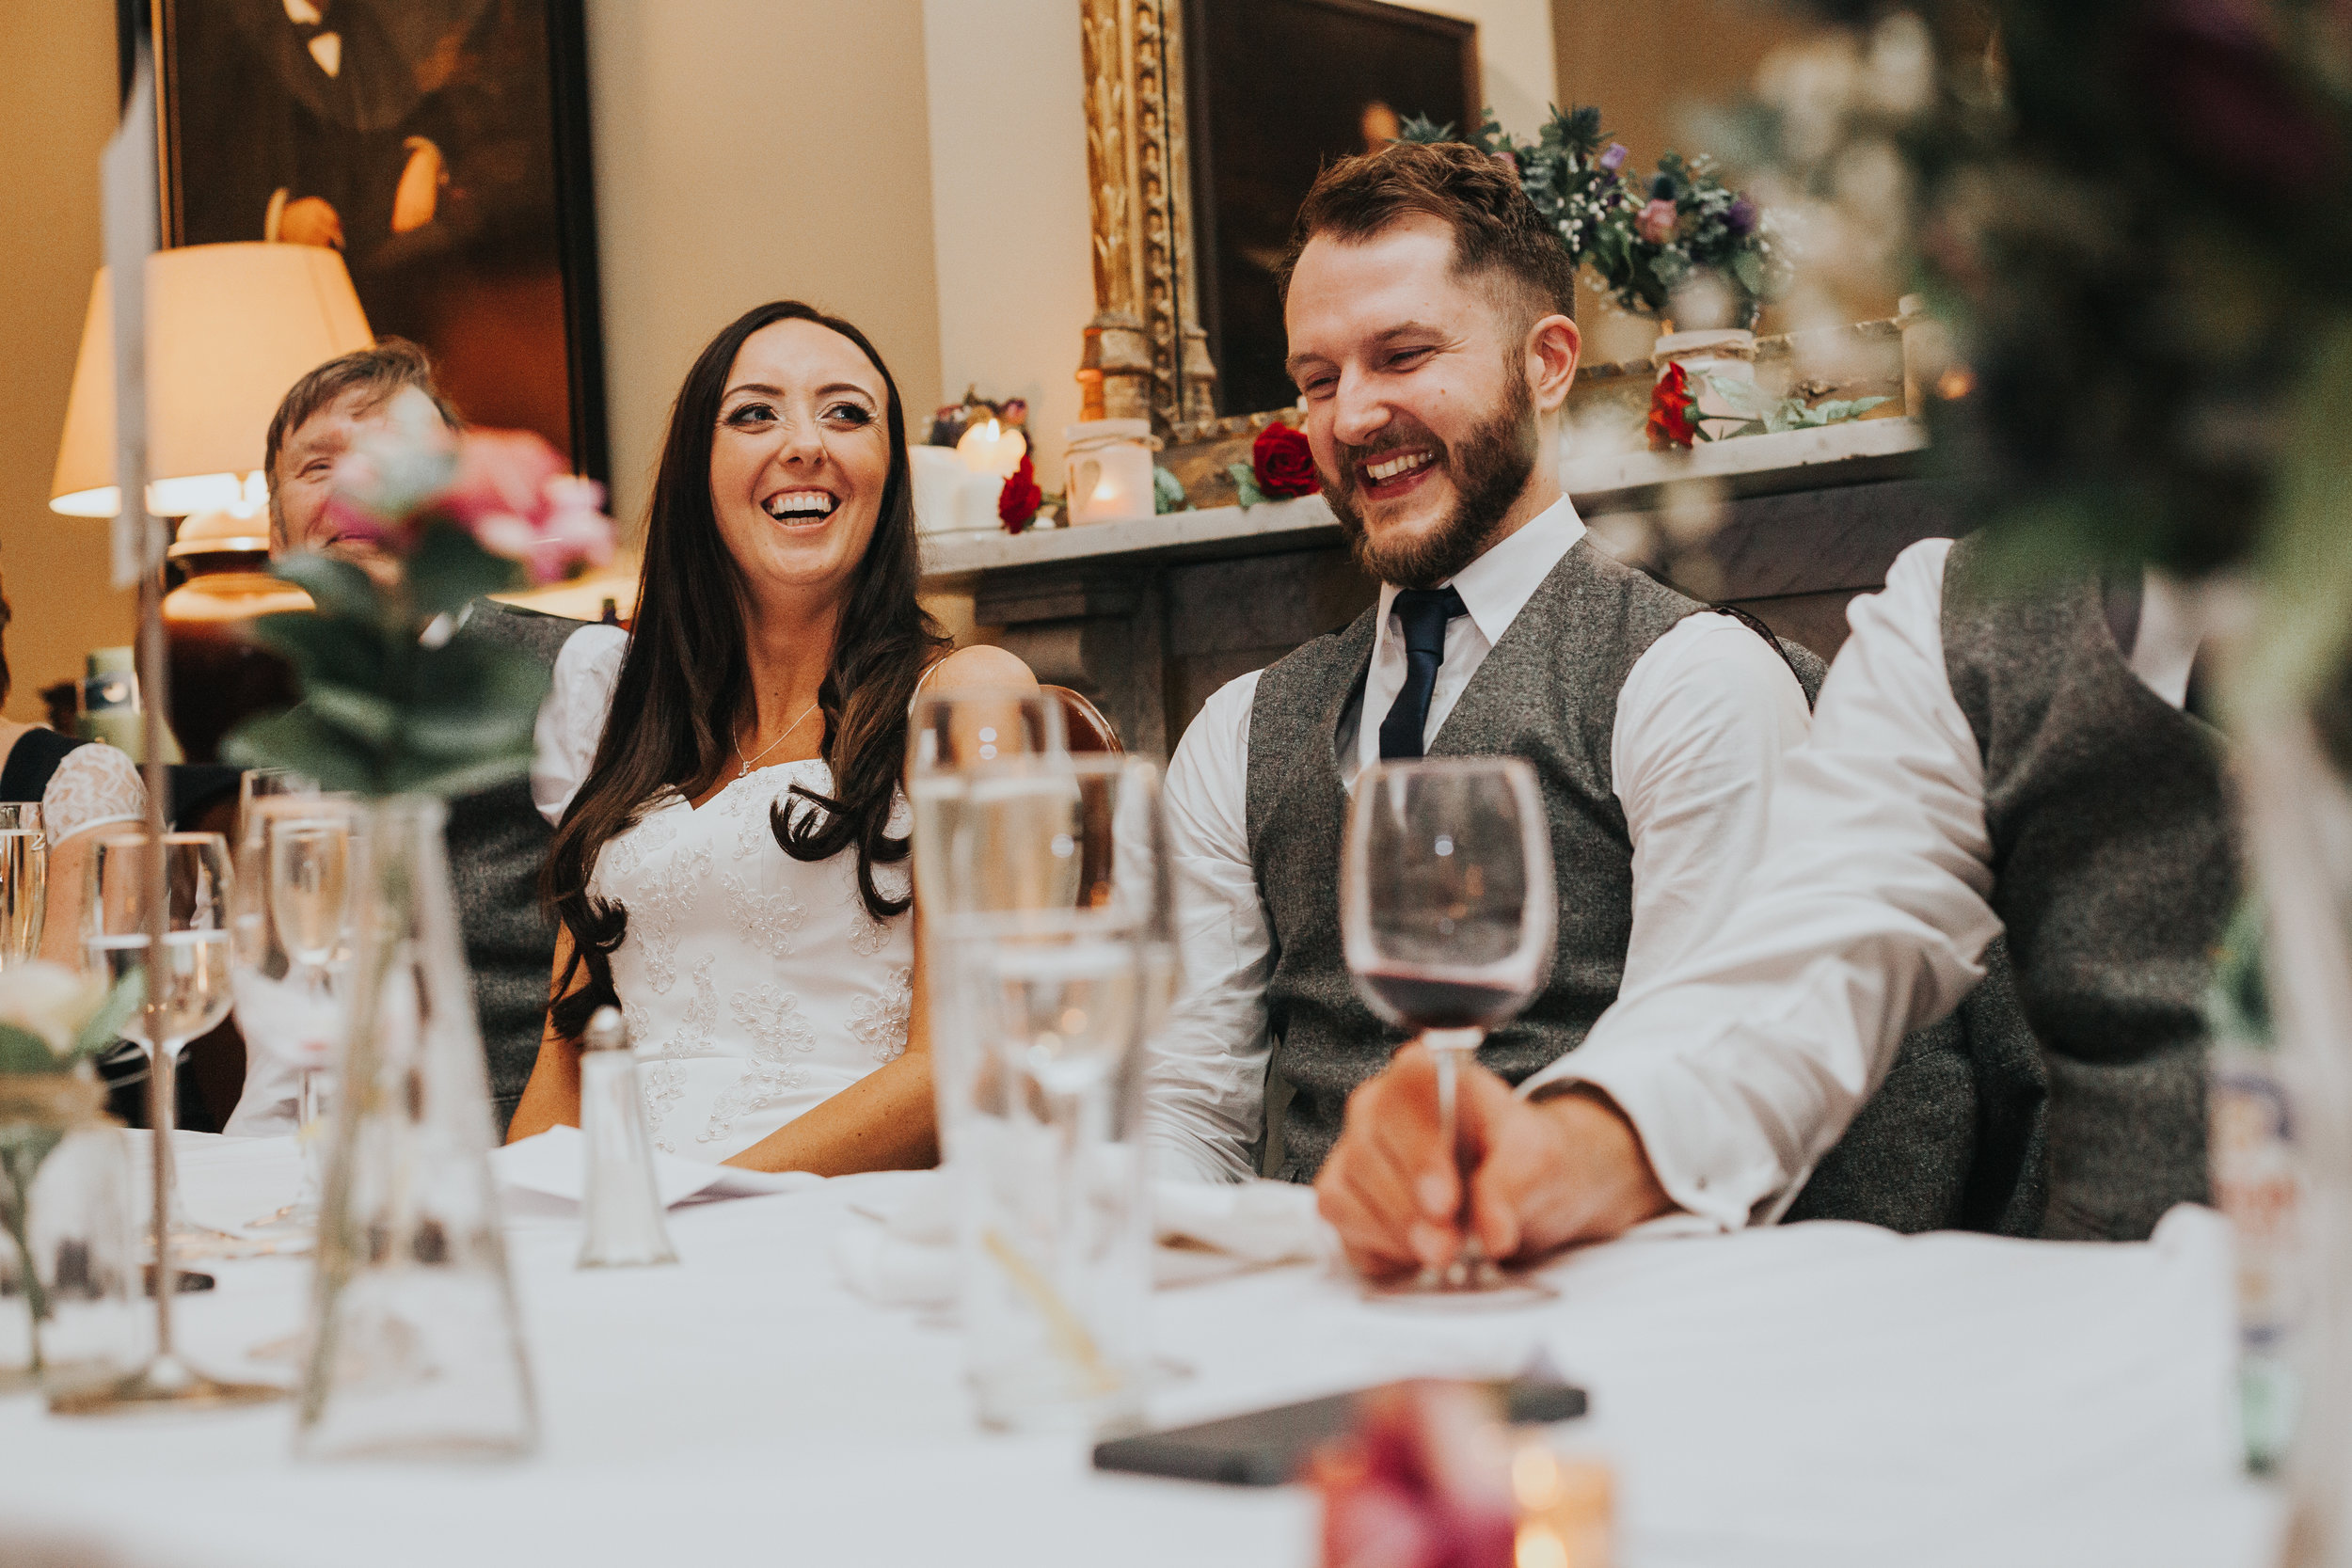 Bride and Groom laughing at Speeches